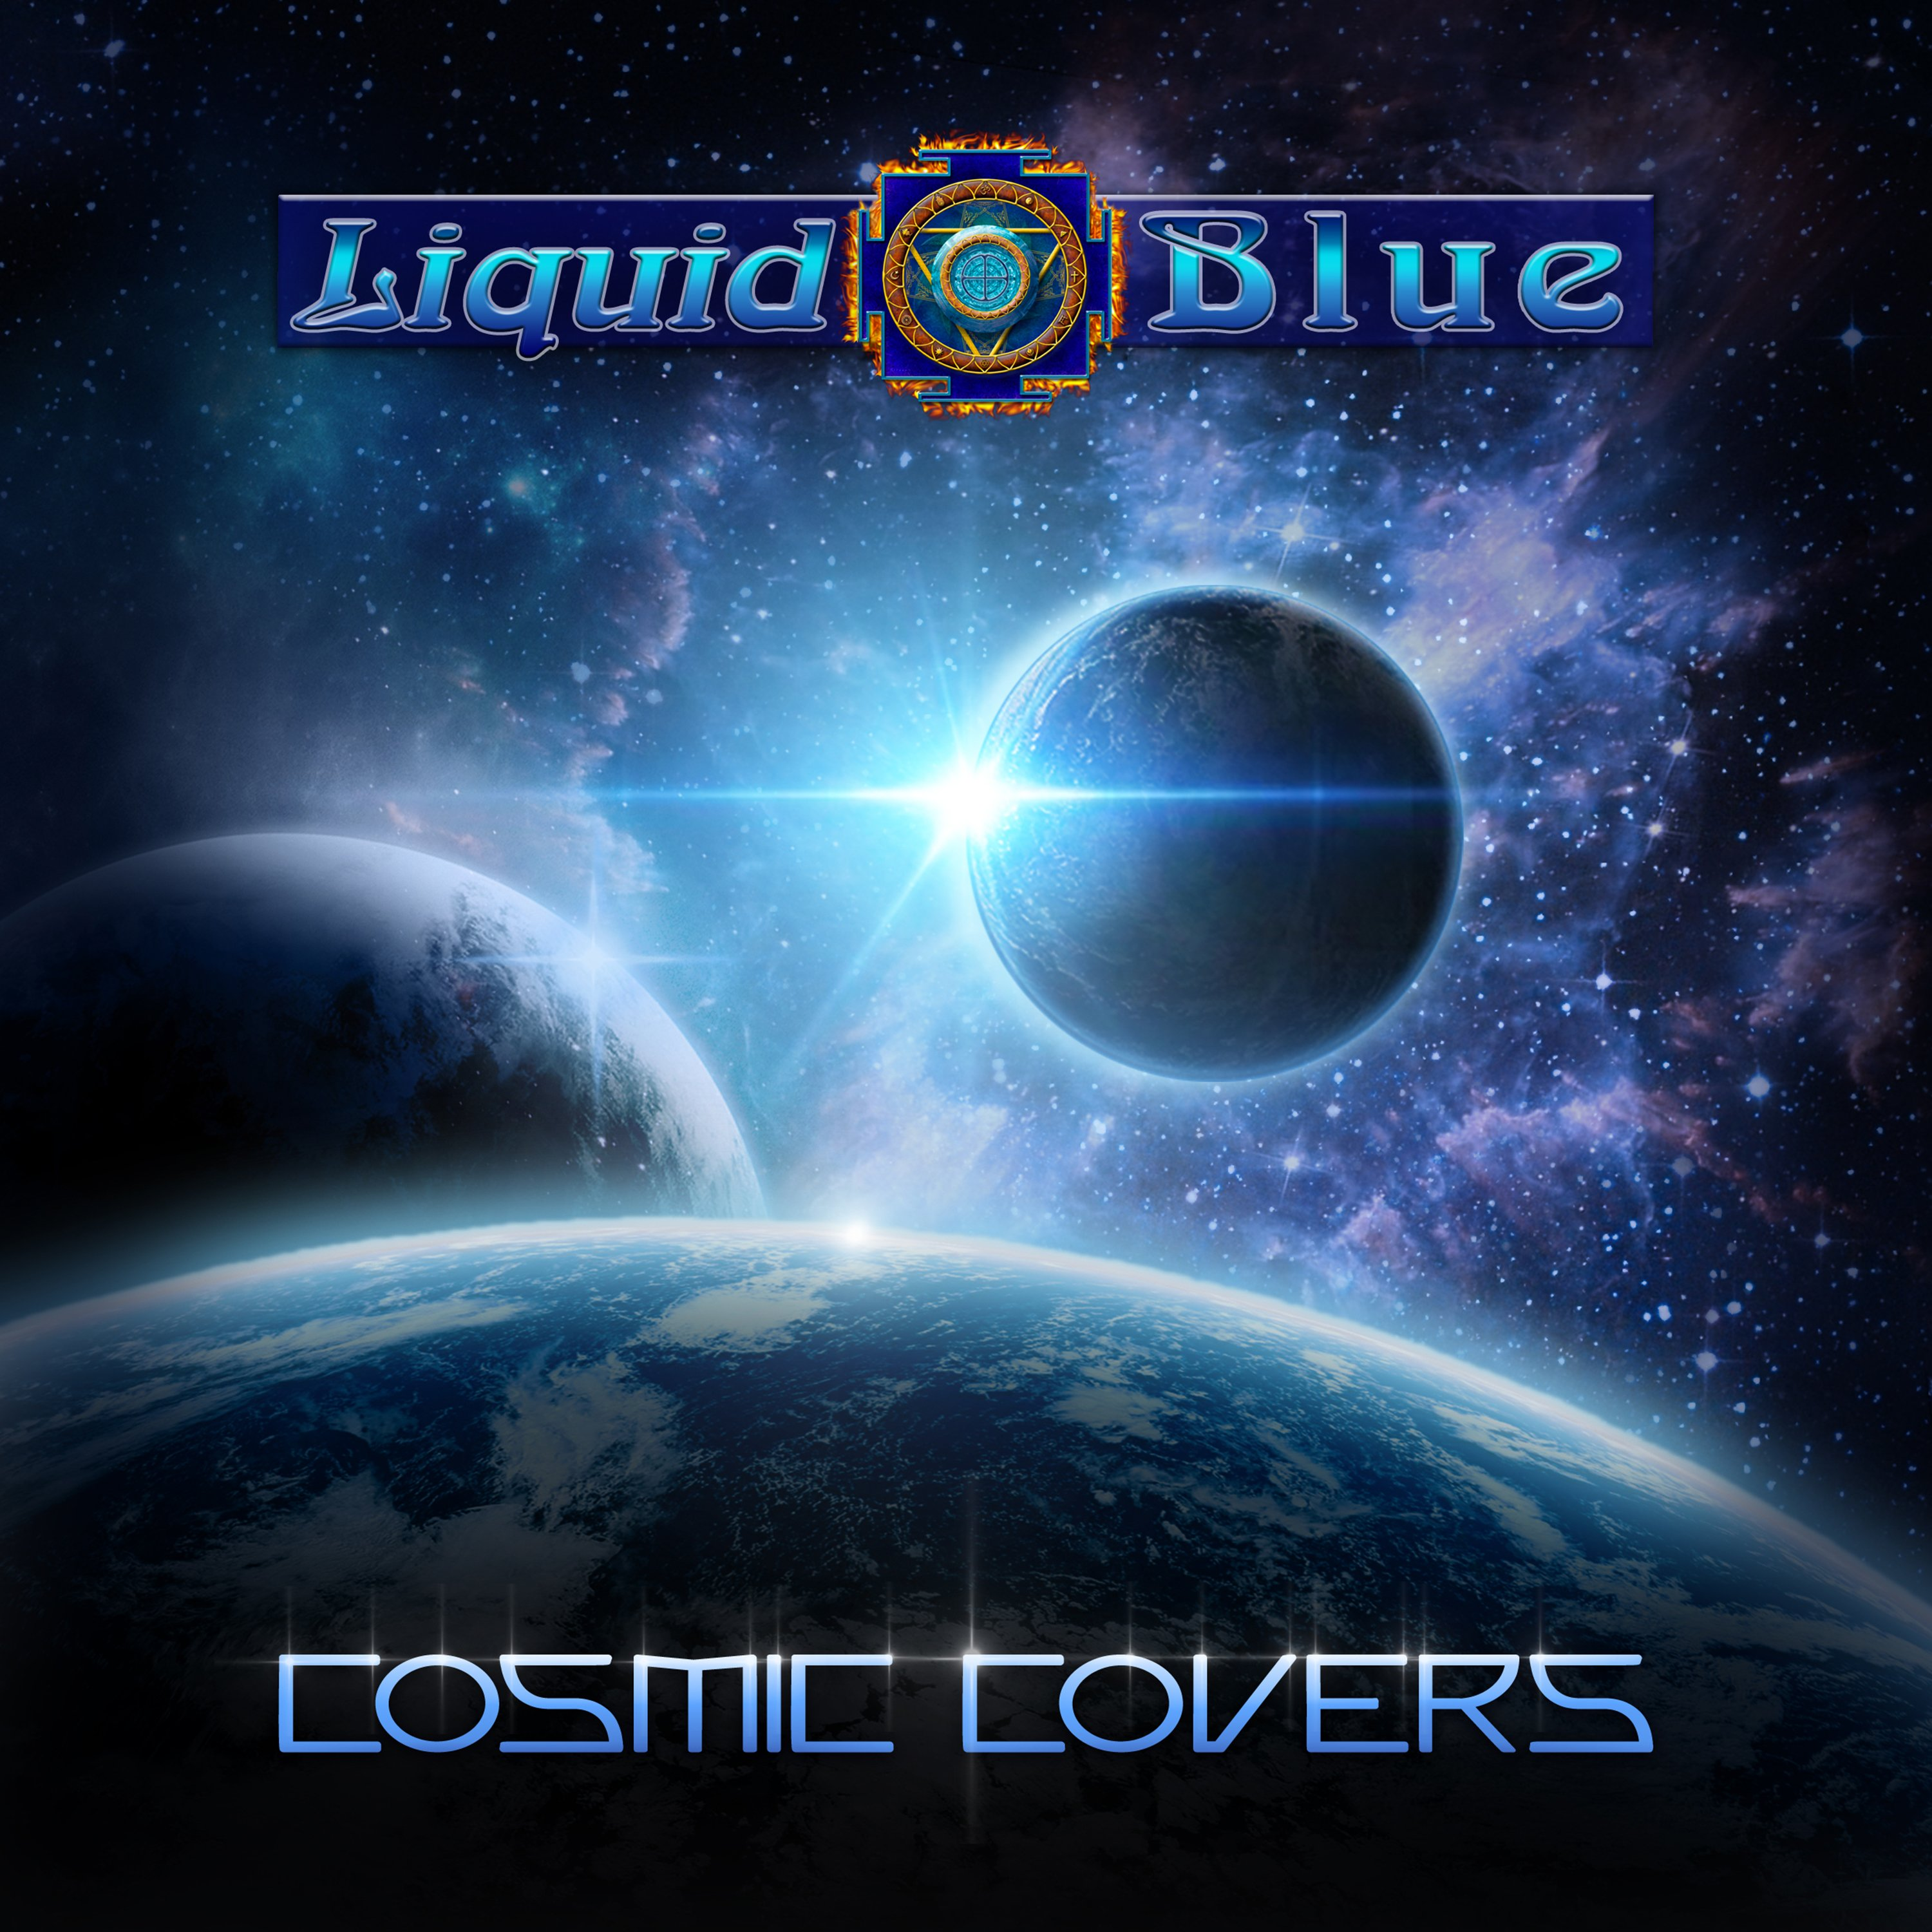 Cosmic Covers - Liquid Blue